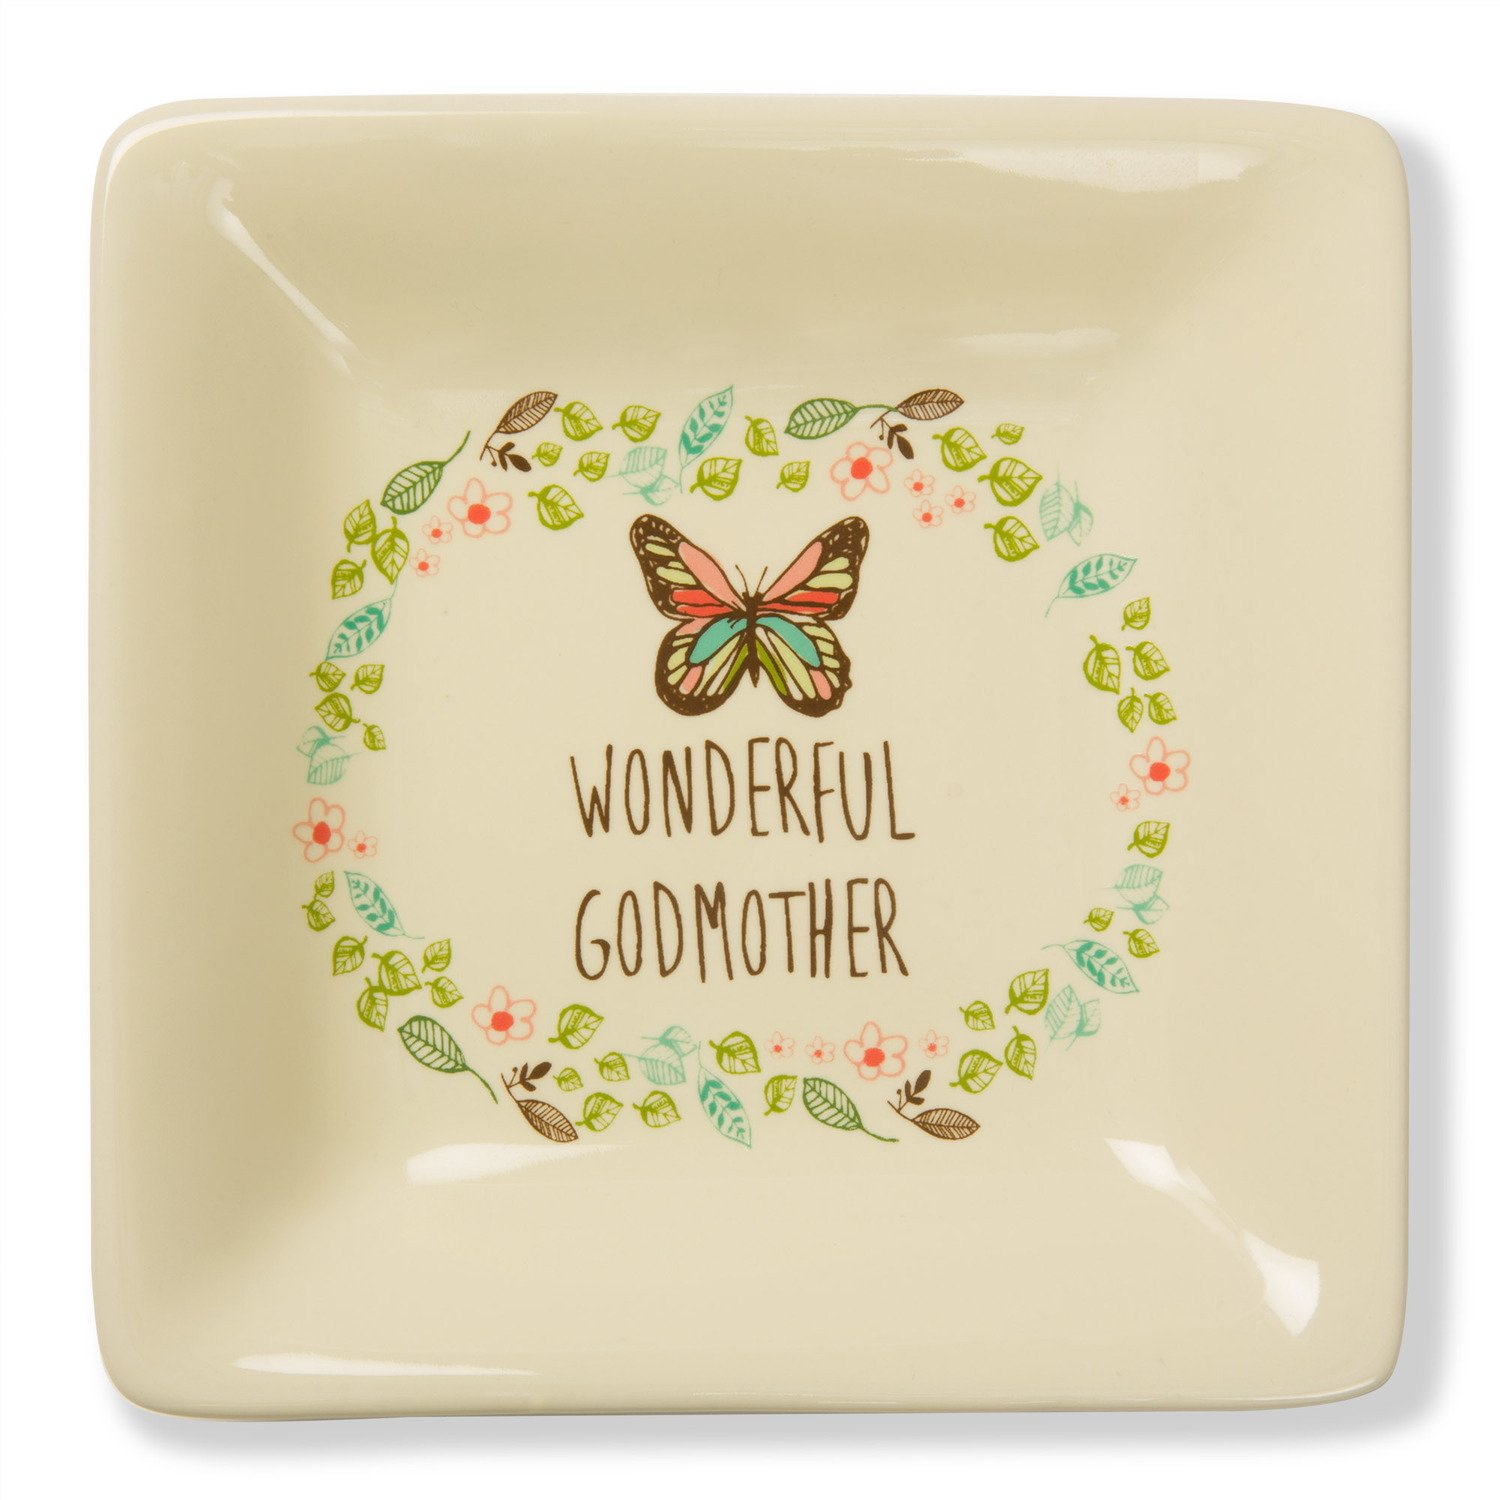 Pavilion Gift Company A Mother's Love - Wonderful Godmother Floral Butterfly Stoneware Jewerly Dish 4.5 Inch, Floral, Cream